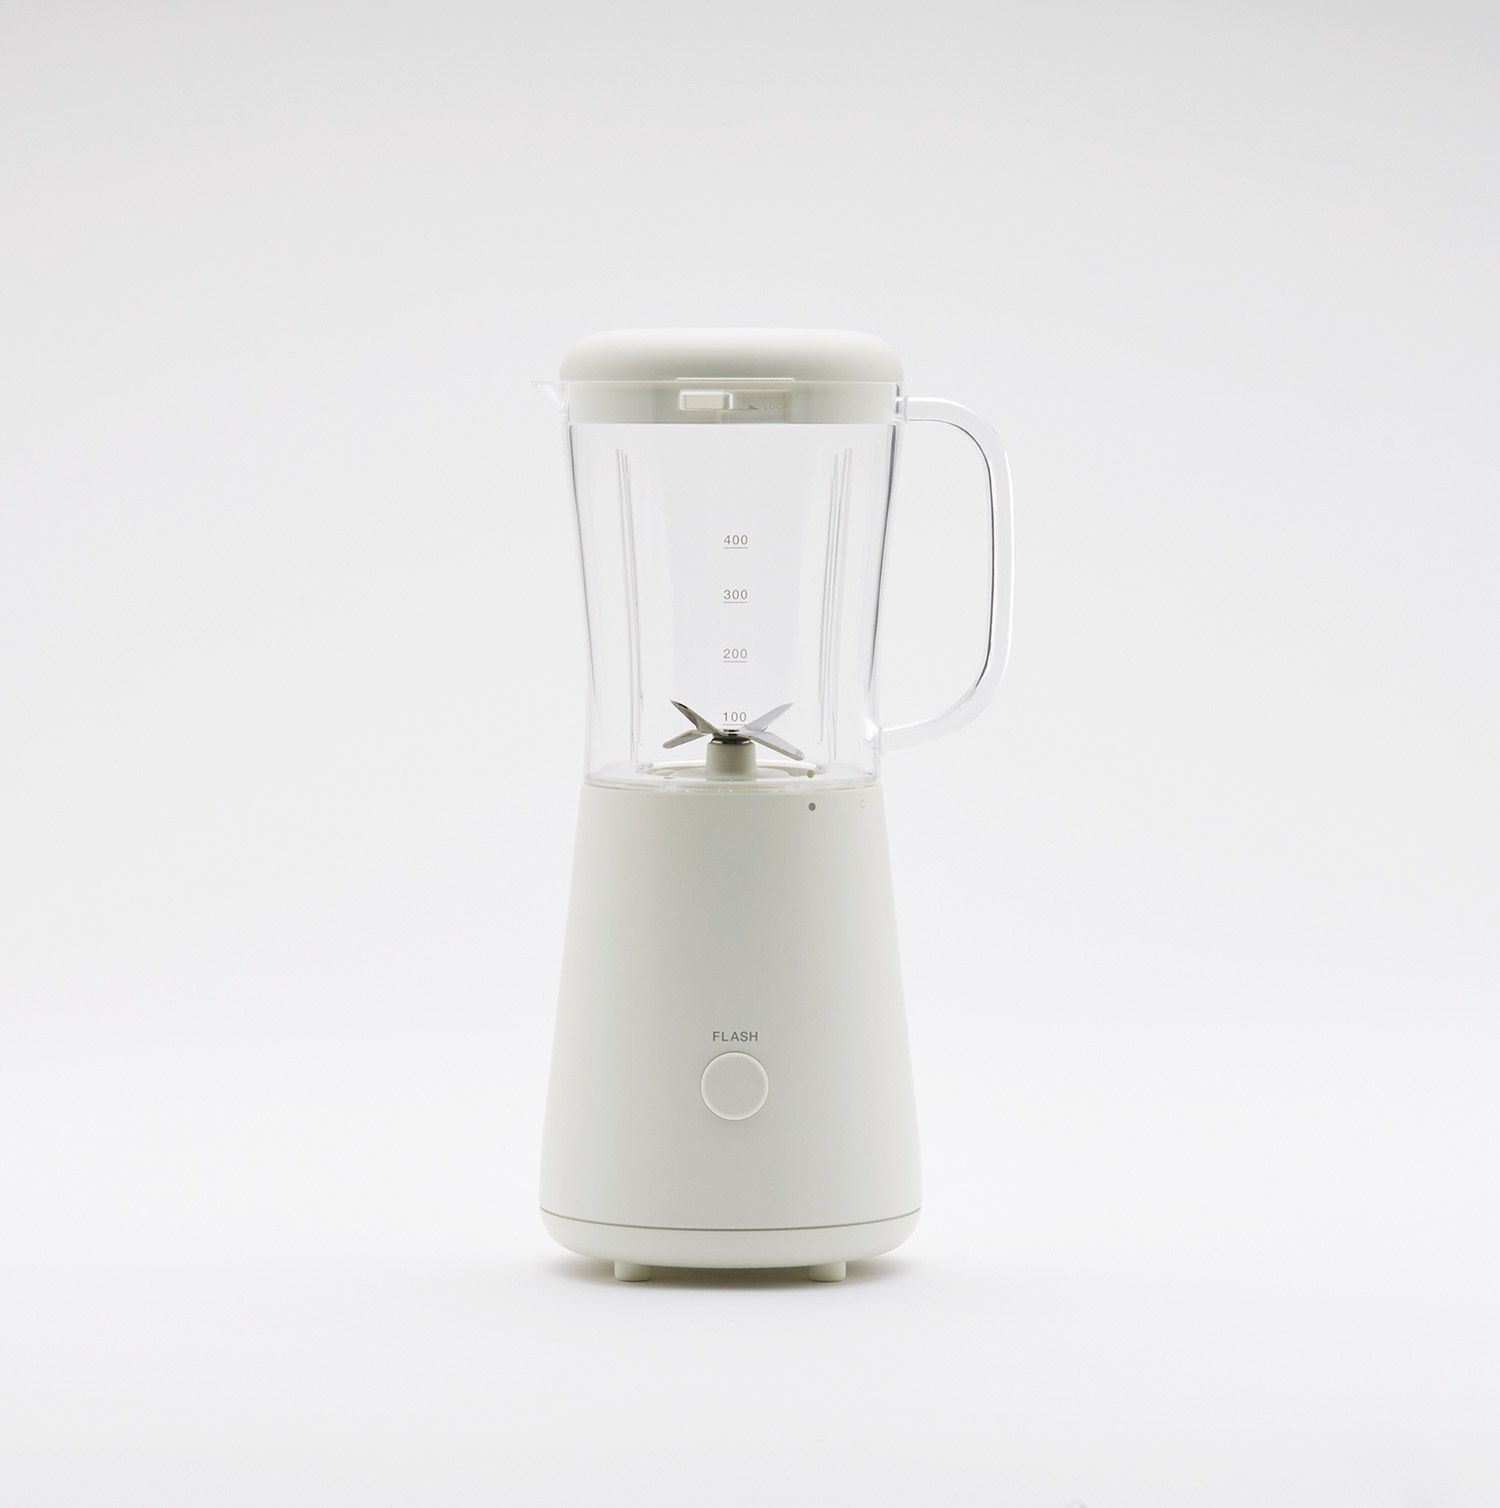 White Kitchen Appliances 2014 juicer mixer | | muji 2014 kitchen appliances | technology and